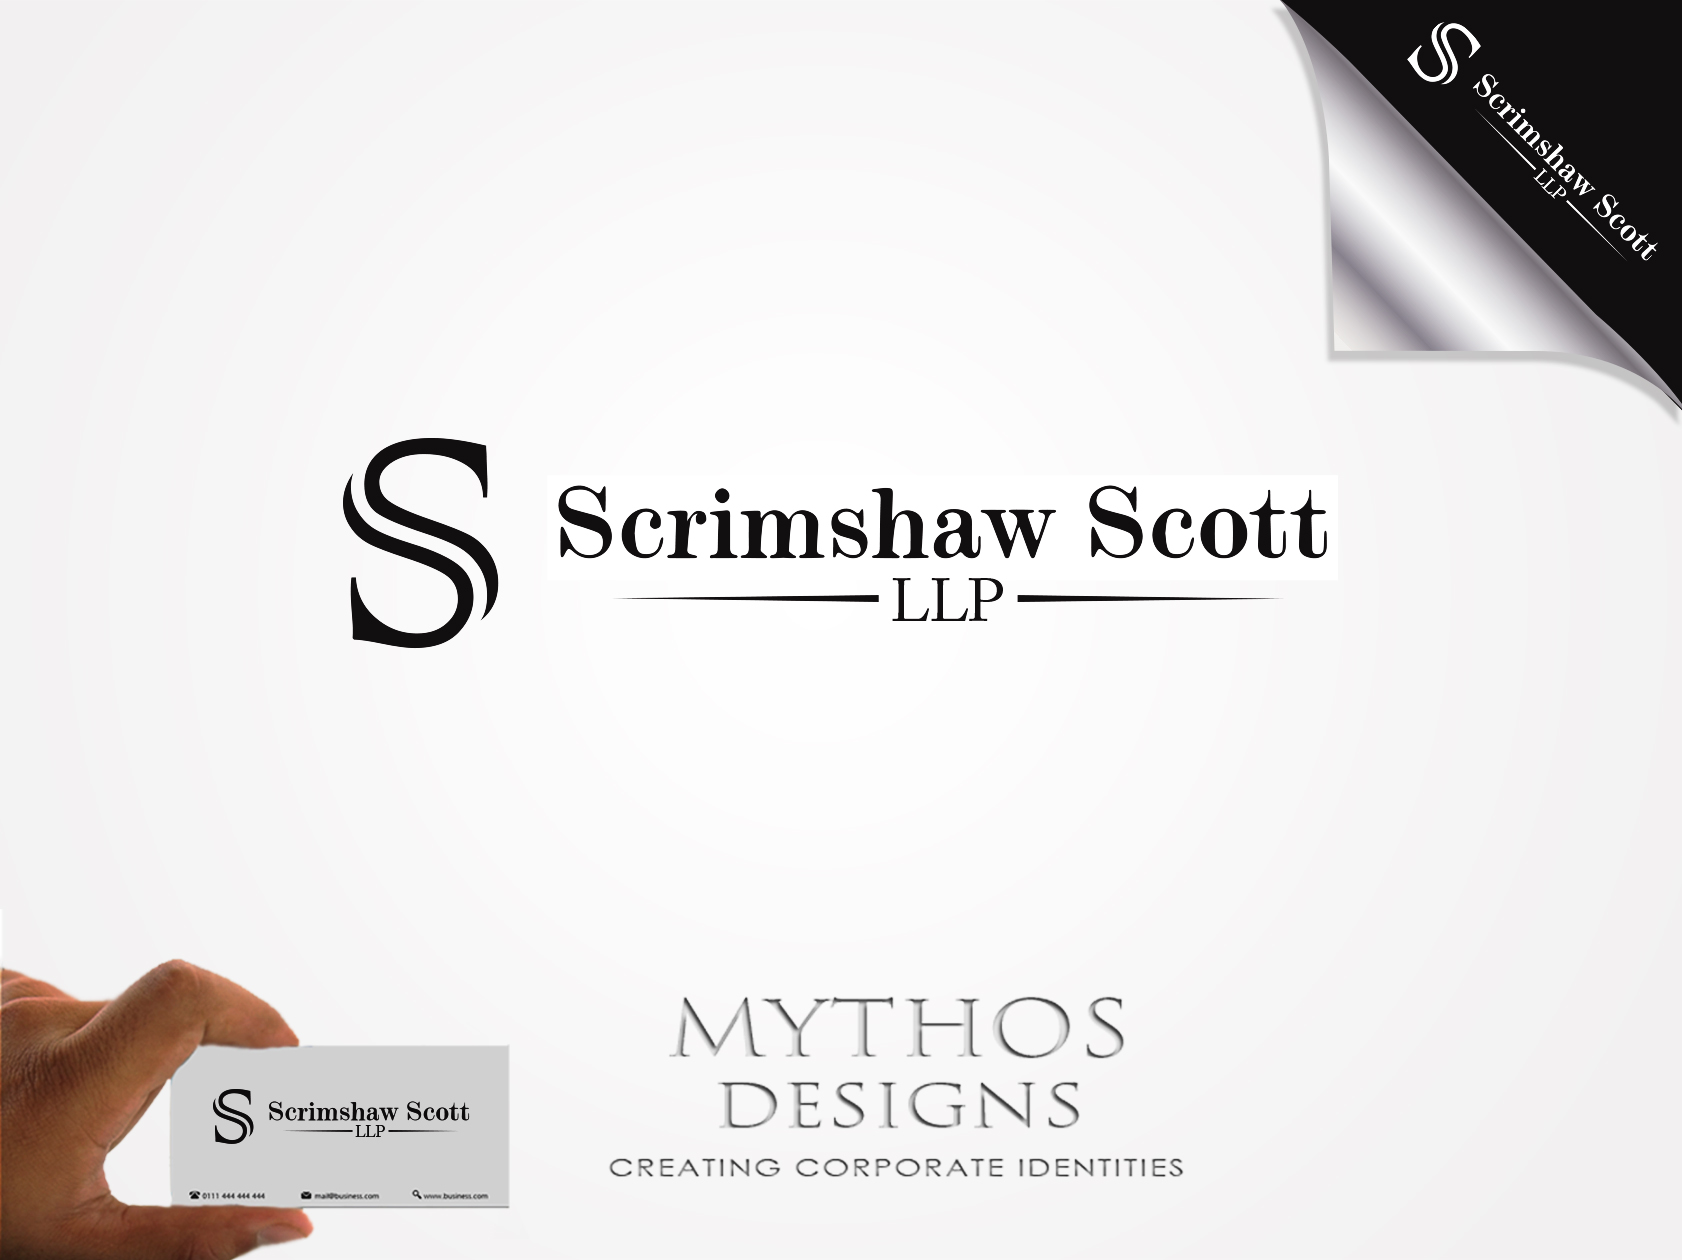 Logo Design by Mythos Designs - Entry No. 53 in the Logo Design Contest Creative Logo Design for Scrimshaw Scott LLP.